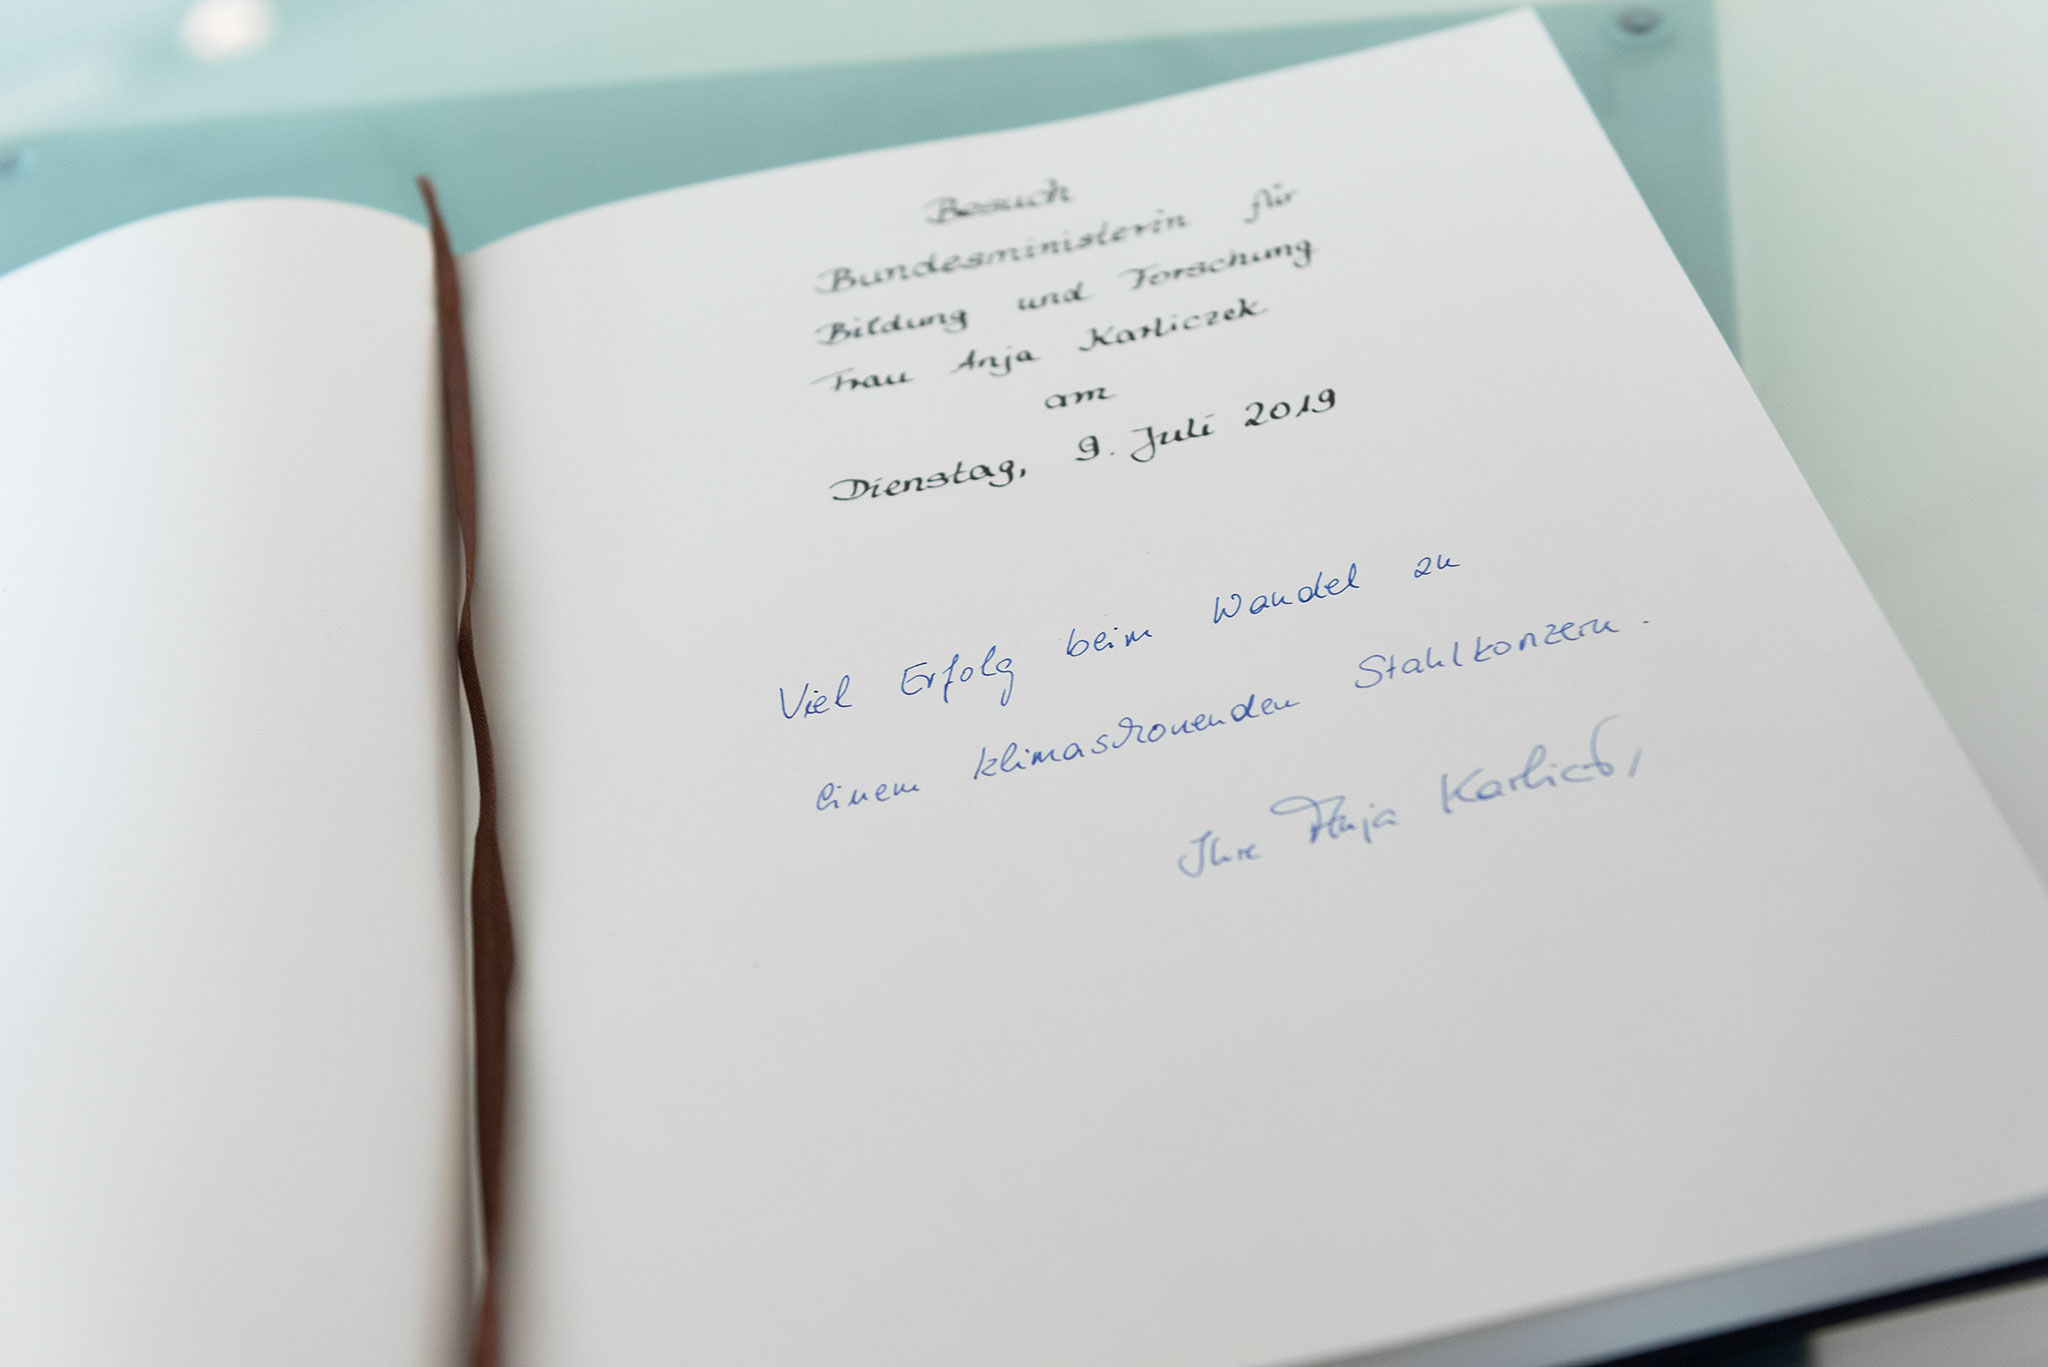 A political stimulus: during her visit to our Duisburg steel site, Federal Research Minister Anja Karliczek found the right words for our guestbook